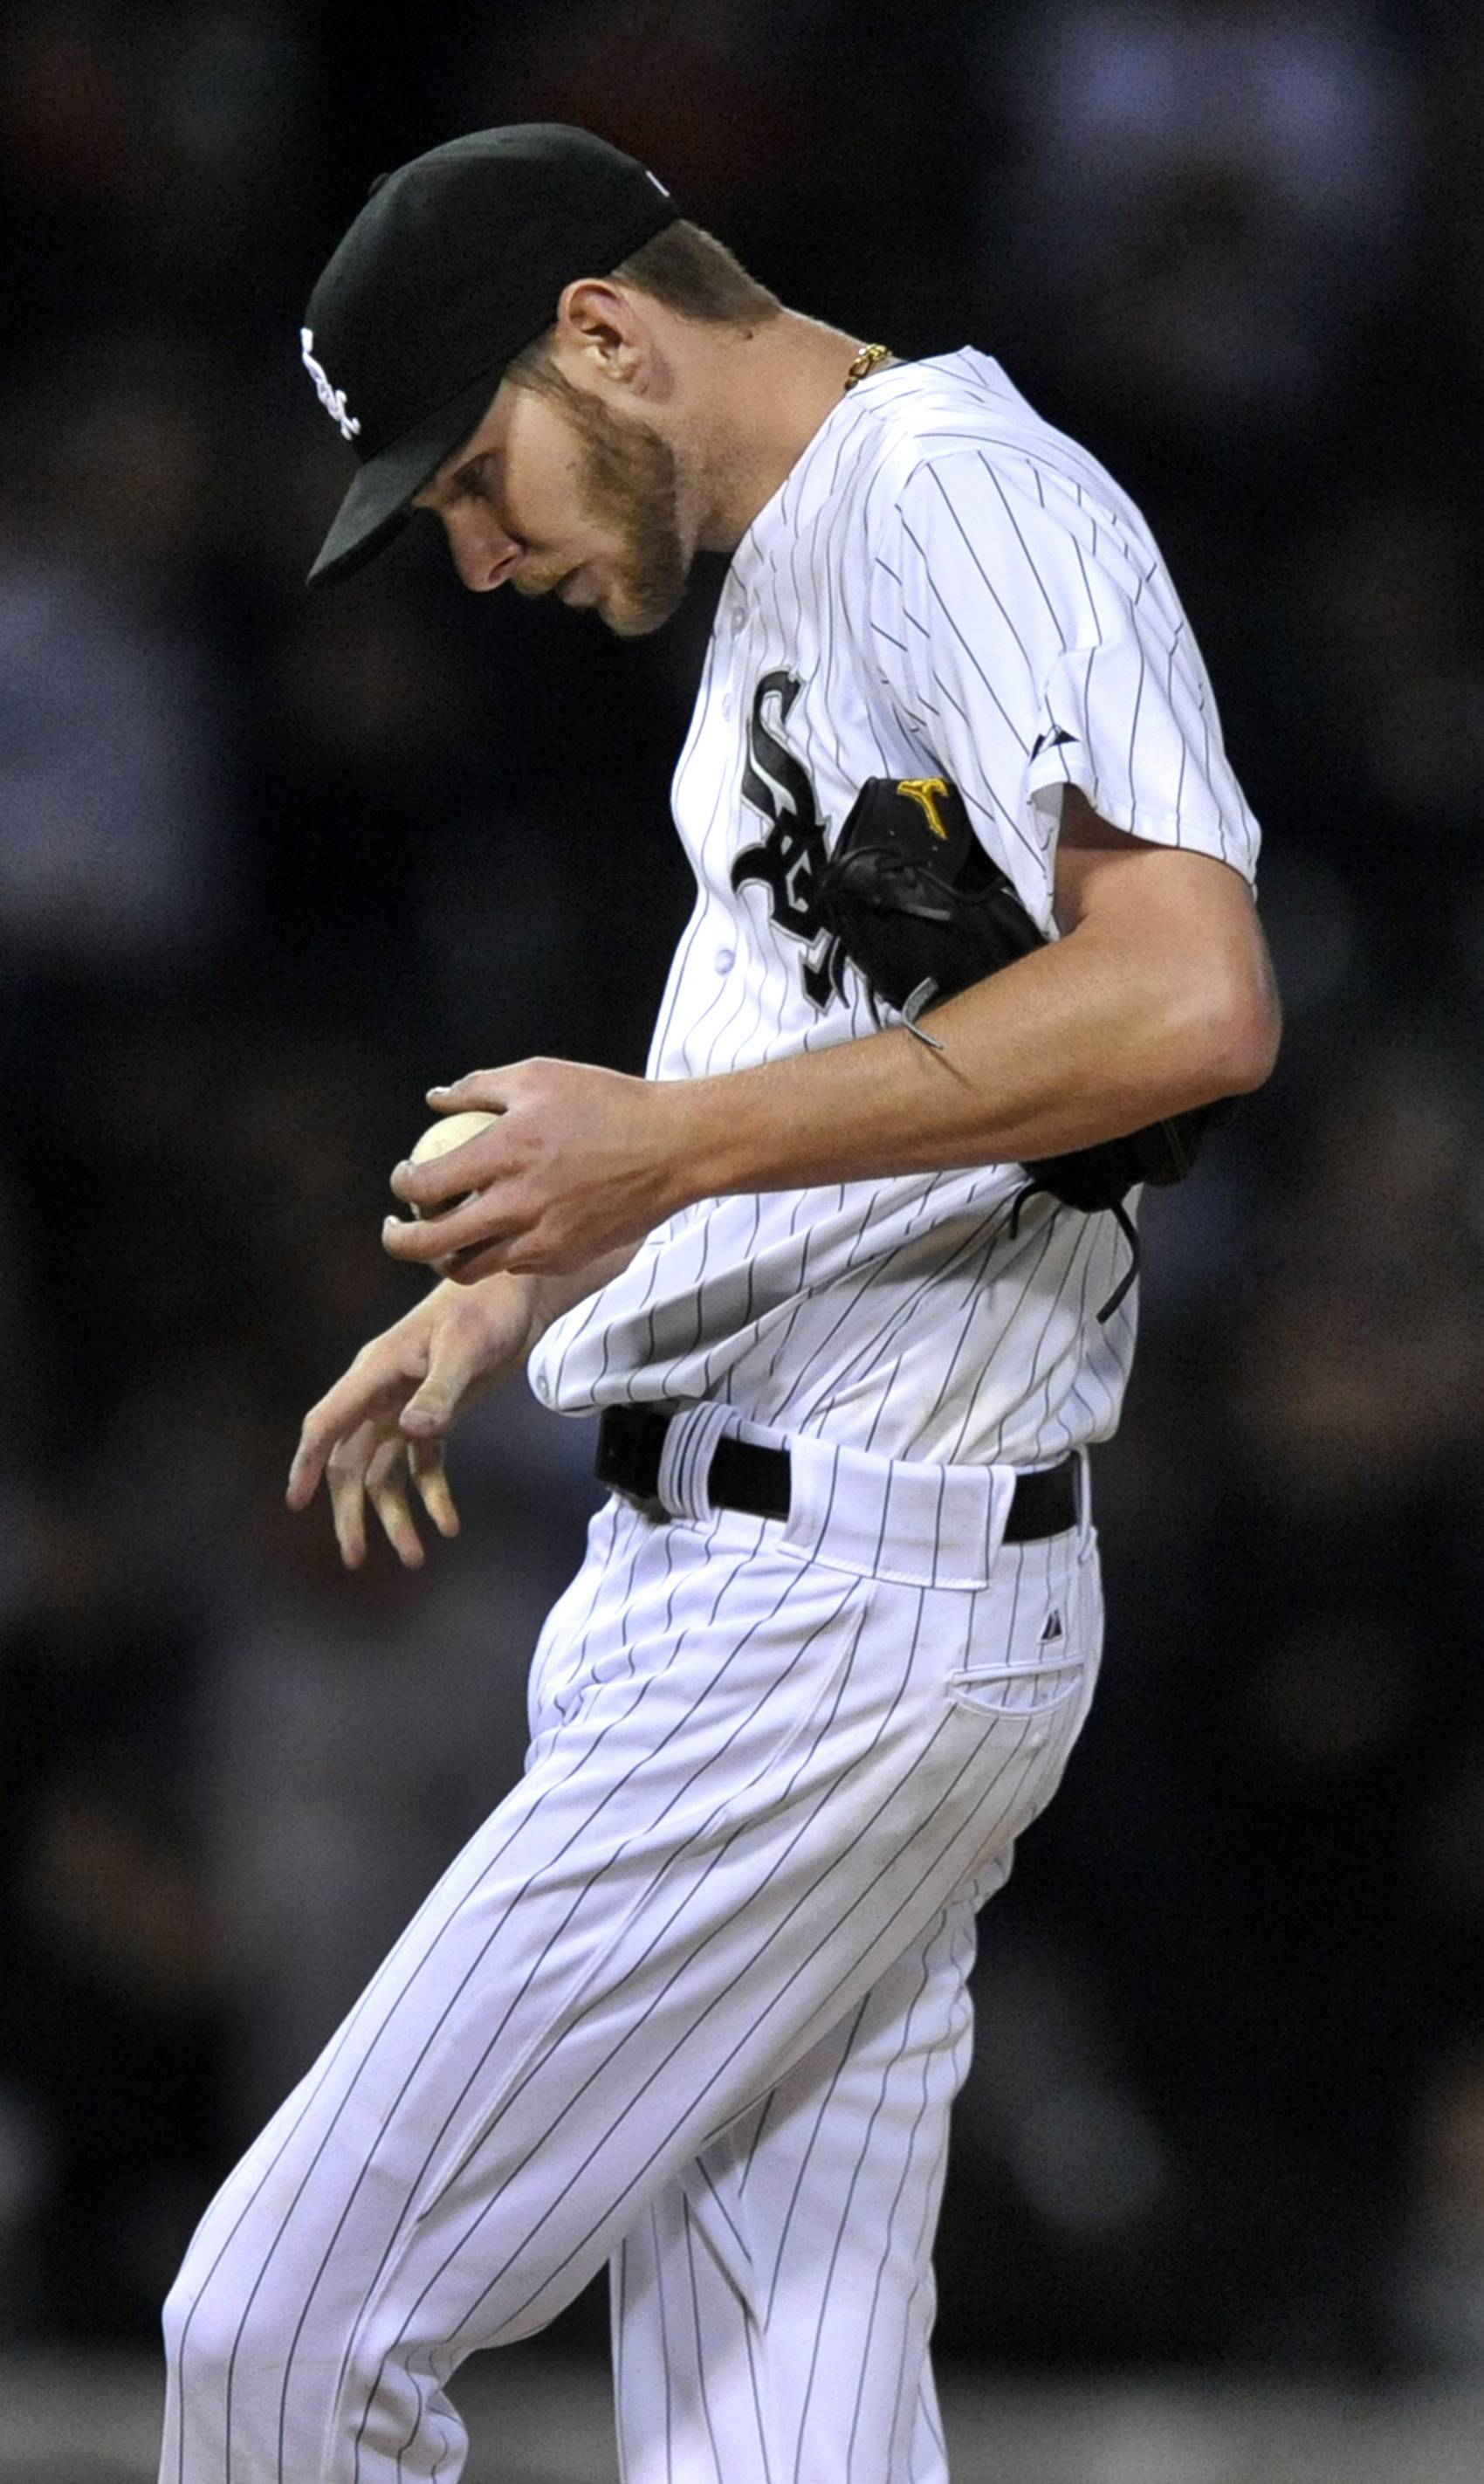 Chicago White Sox starting pitcher Chris Sale reacts to giving up a solo home run to Boston Red Sox's Xander Bogaerts during the sixth inning of a baseball game in Chicago, Thursday, April 17, 2014. (AP Photo/Paul Beaty)